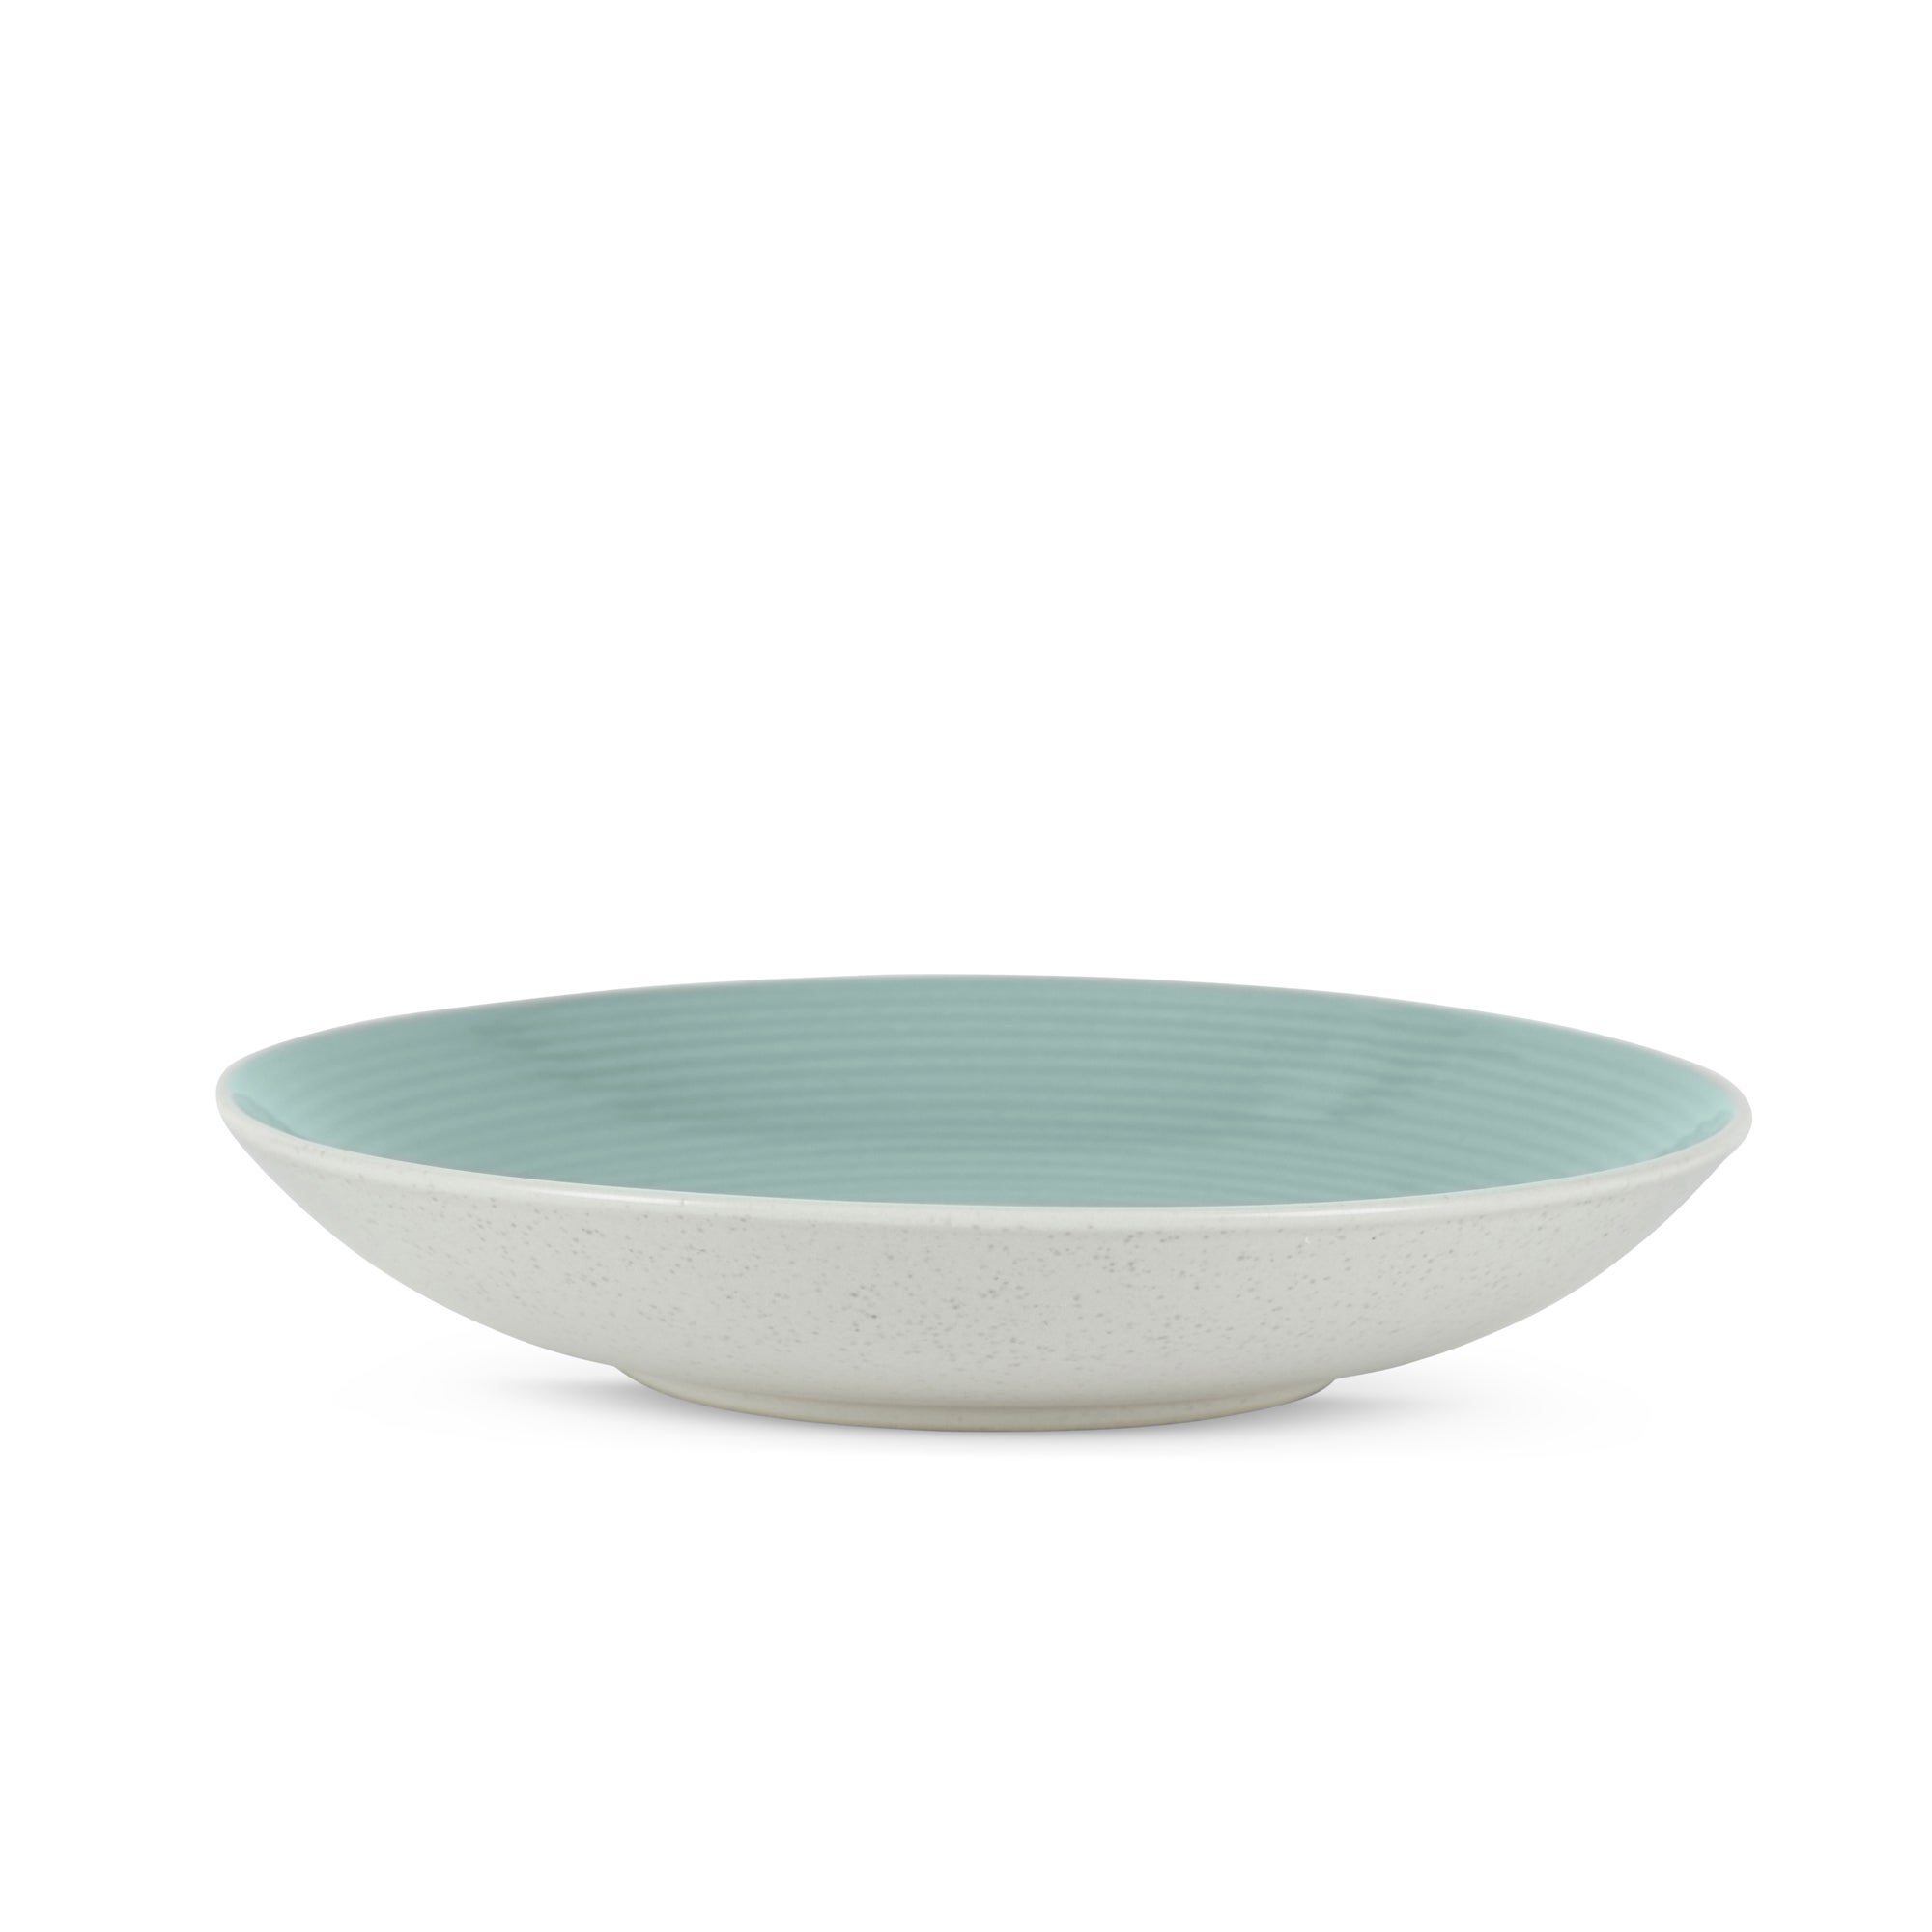 Click to view product details and reviews for Lulworth Seafoam Pasta Bowl Seafoam.